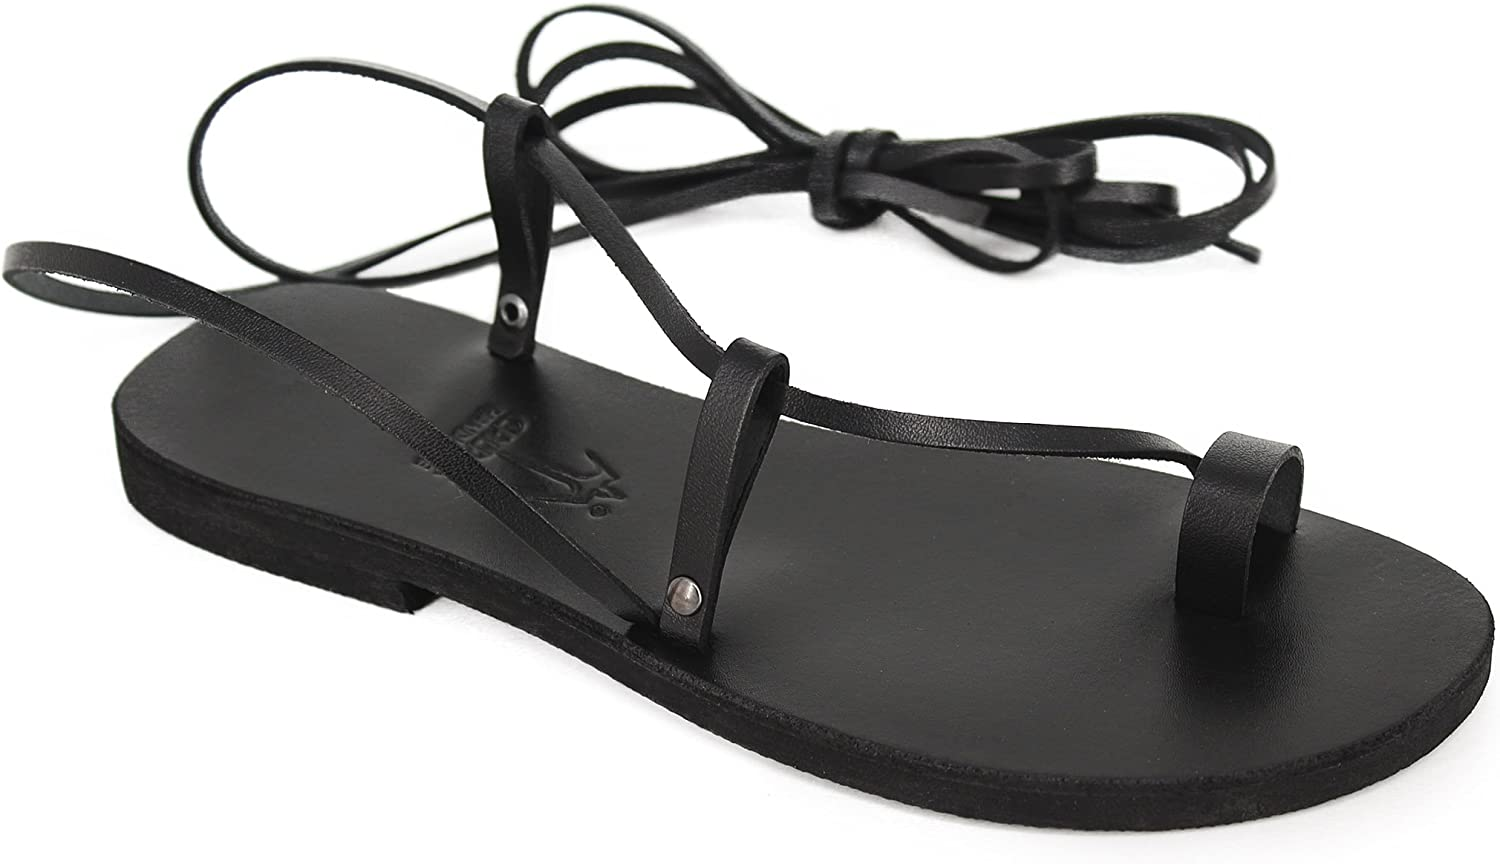 Calpas Barefoot Lace Ups, Toe Ring Stylish Anklet Sandals, Tie up, Wrap up Sandals - Pearl Black